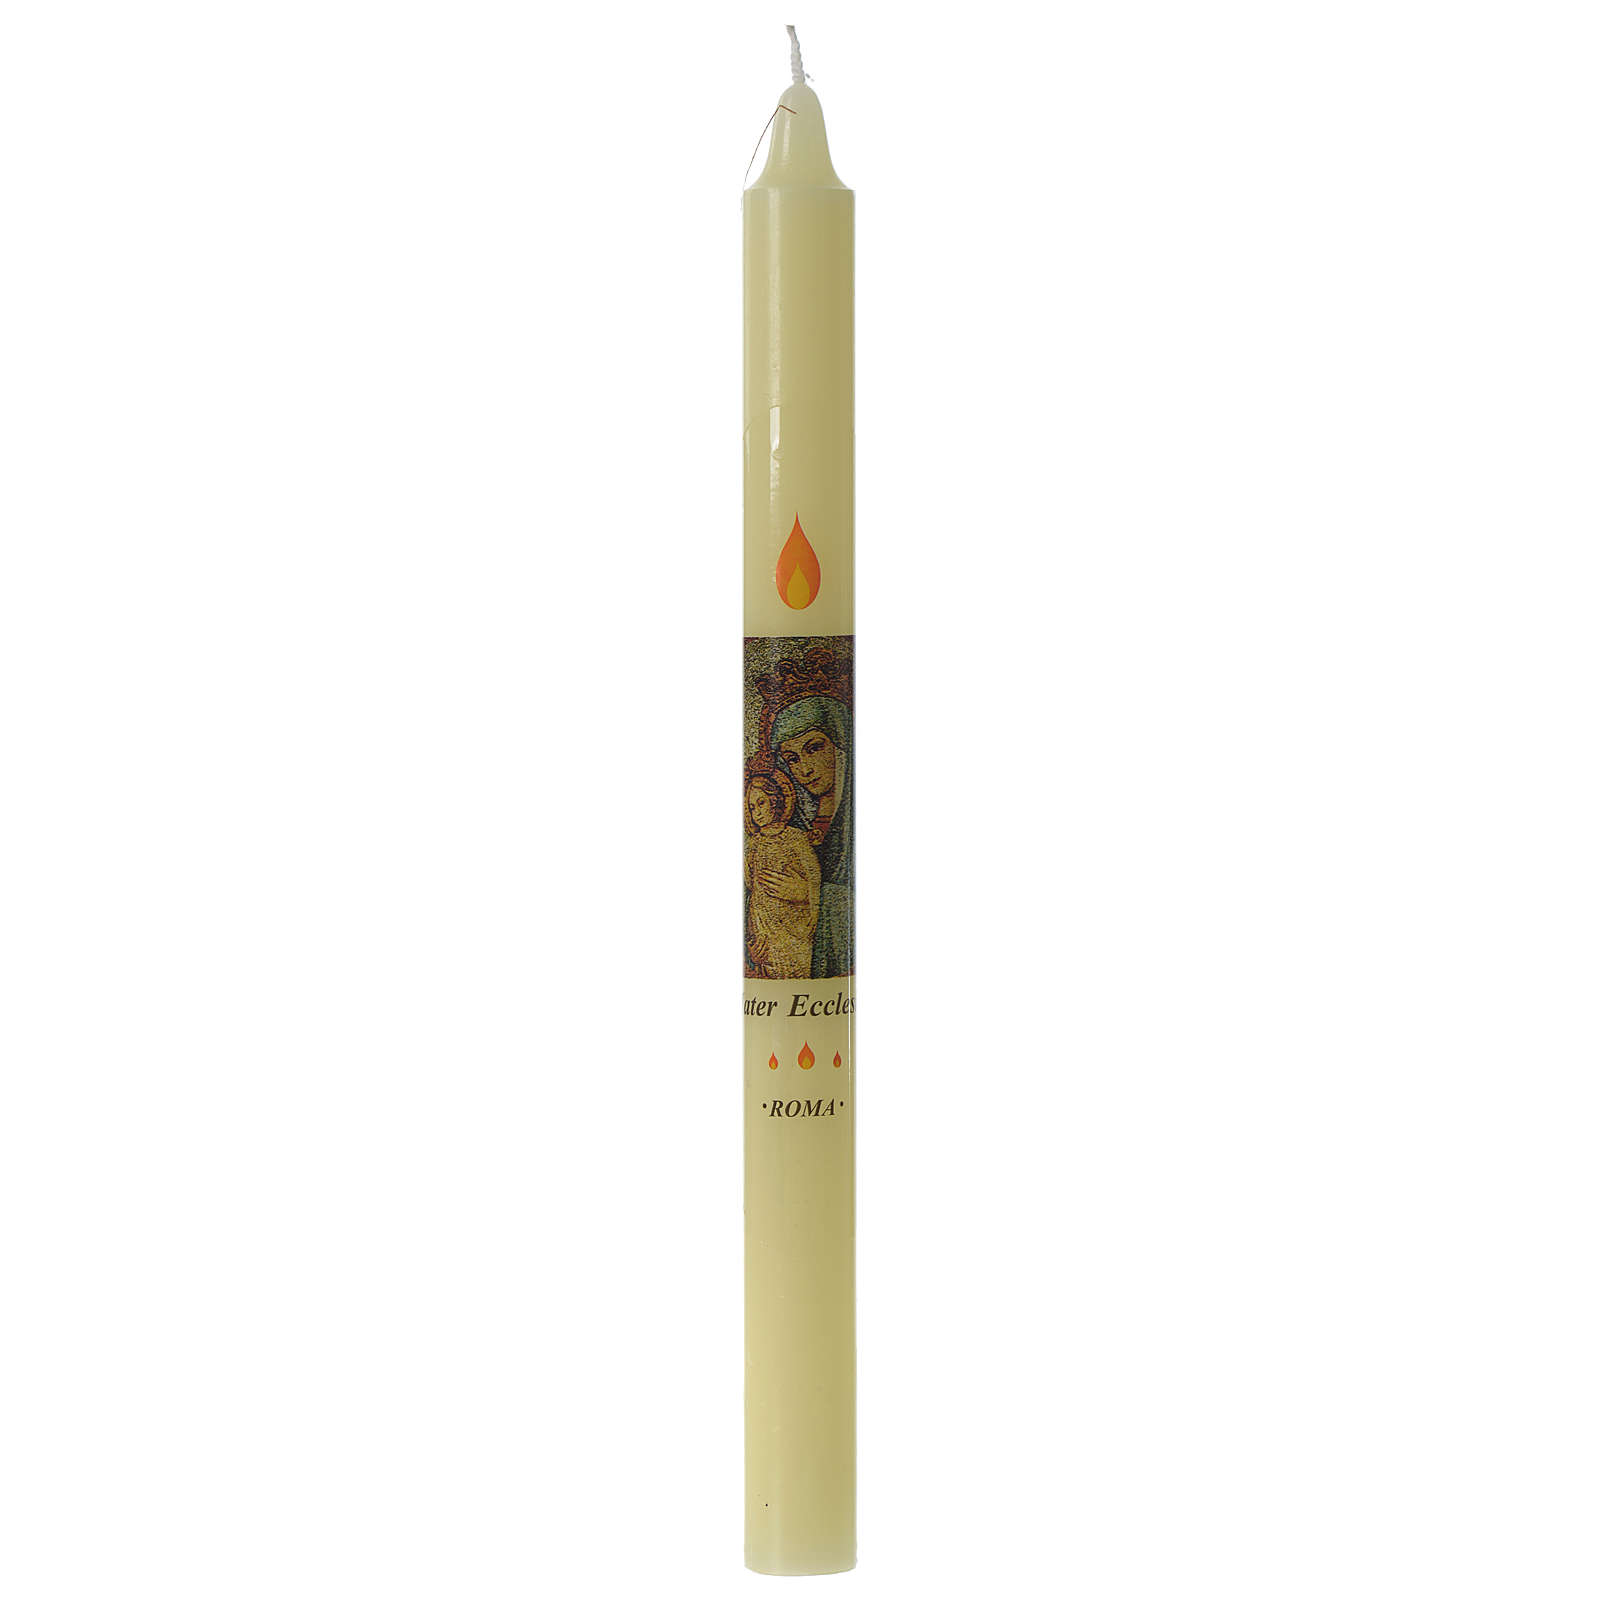 Beeswax Mater Ecclesia candle 3